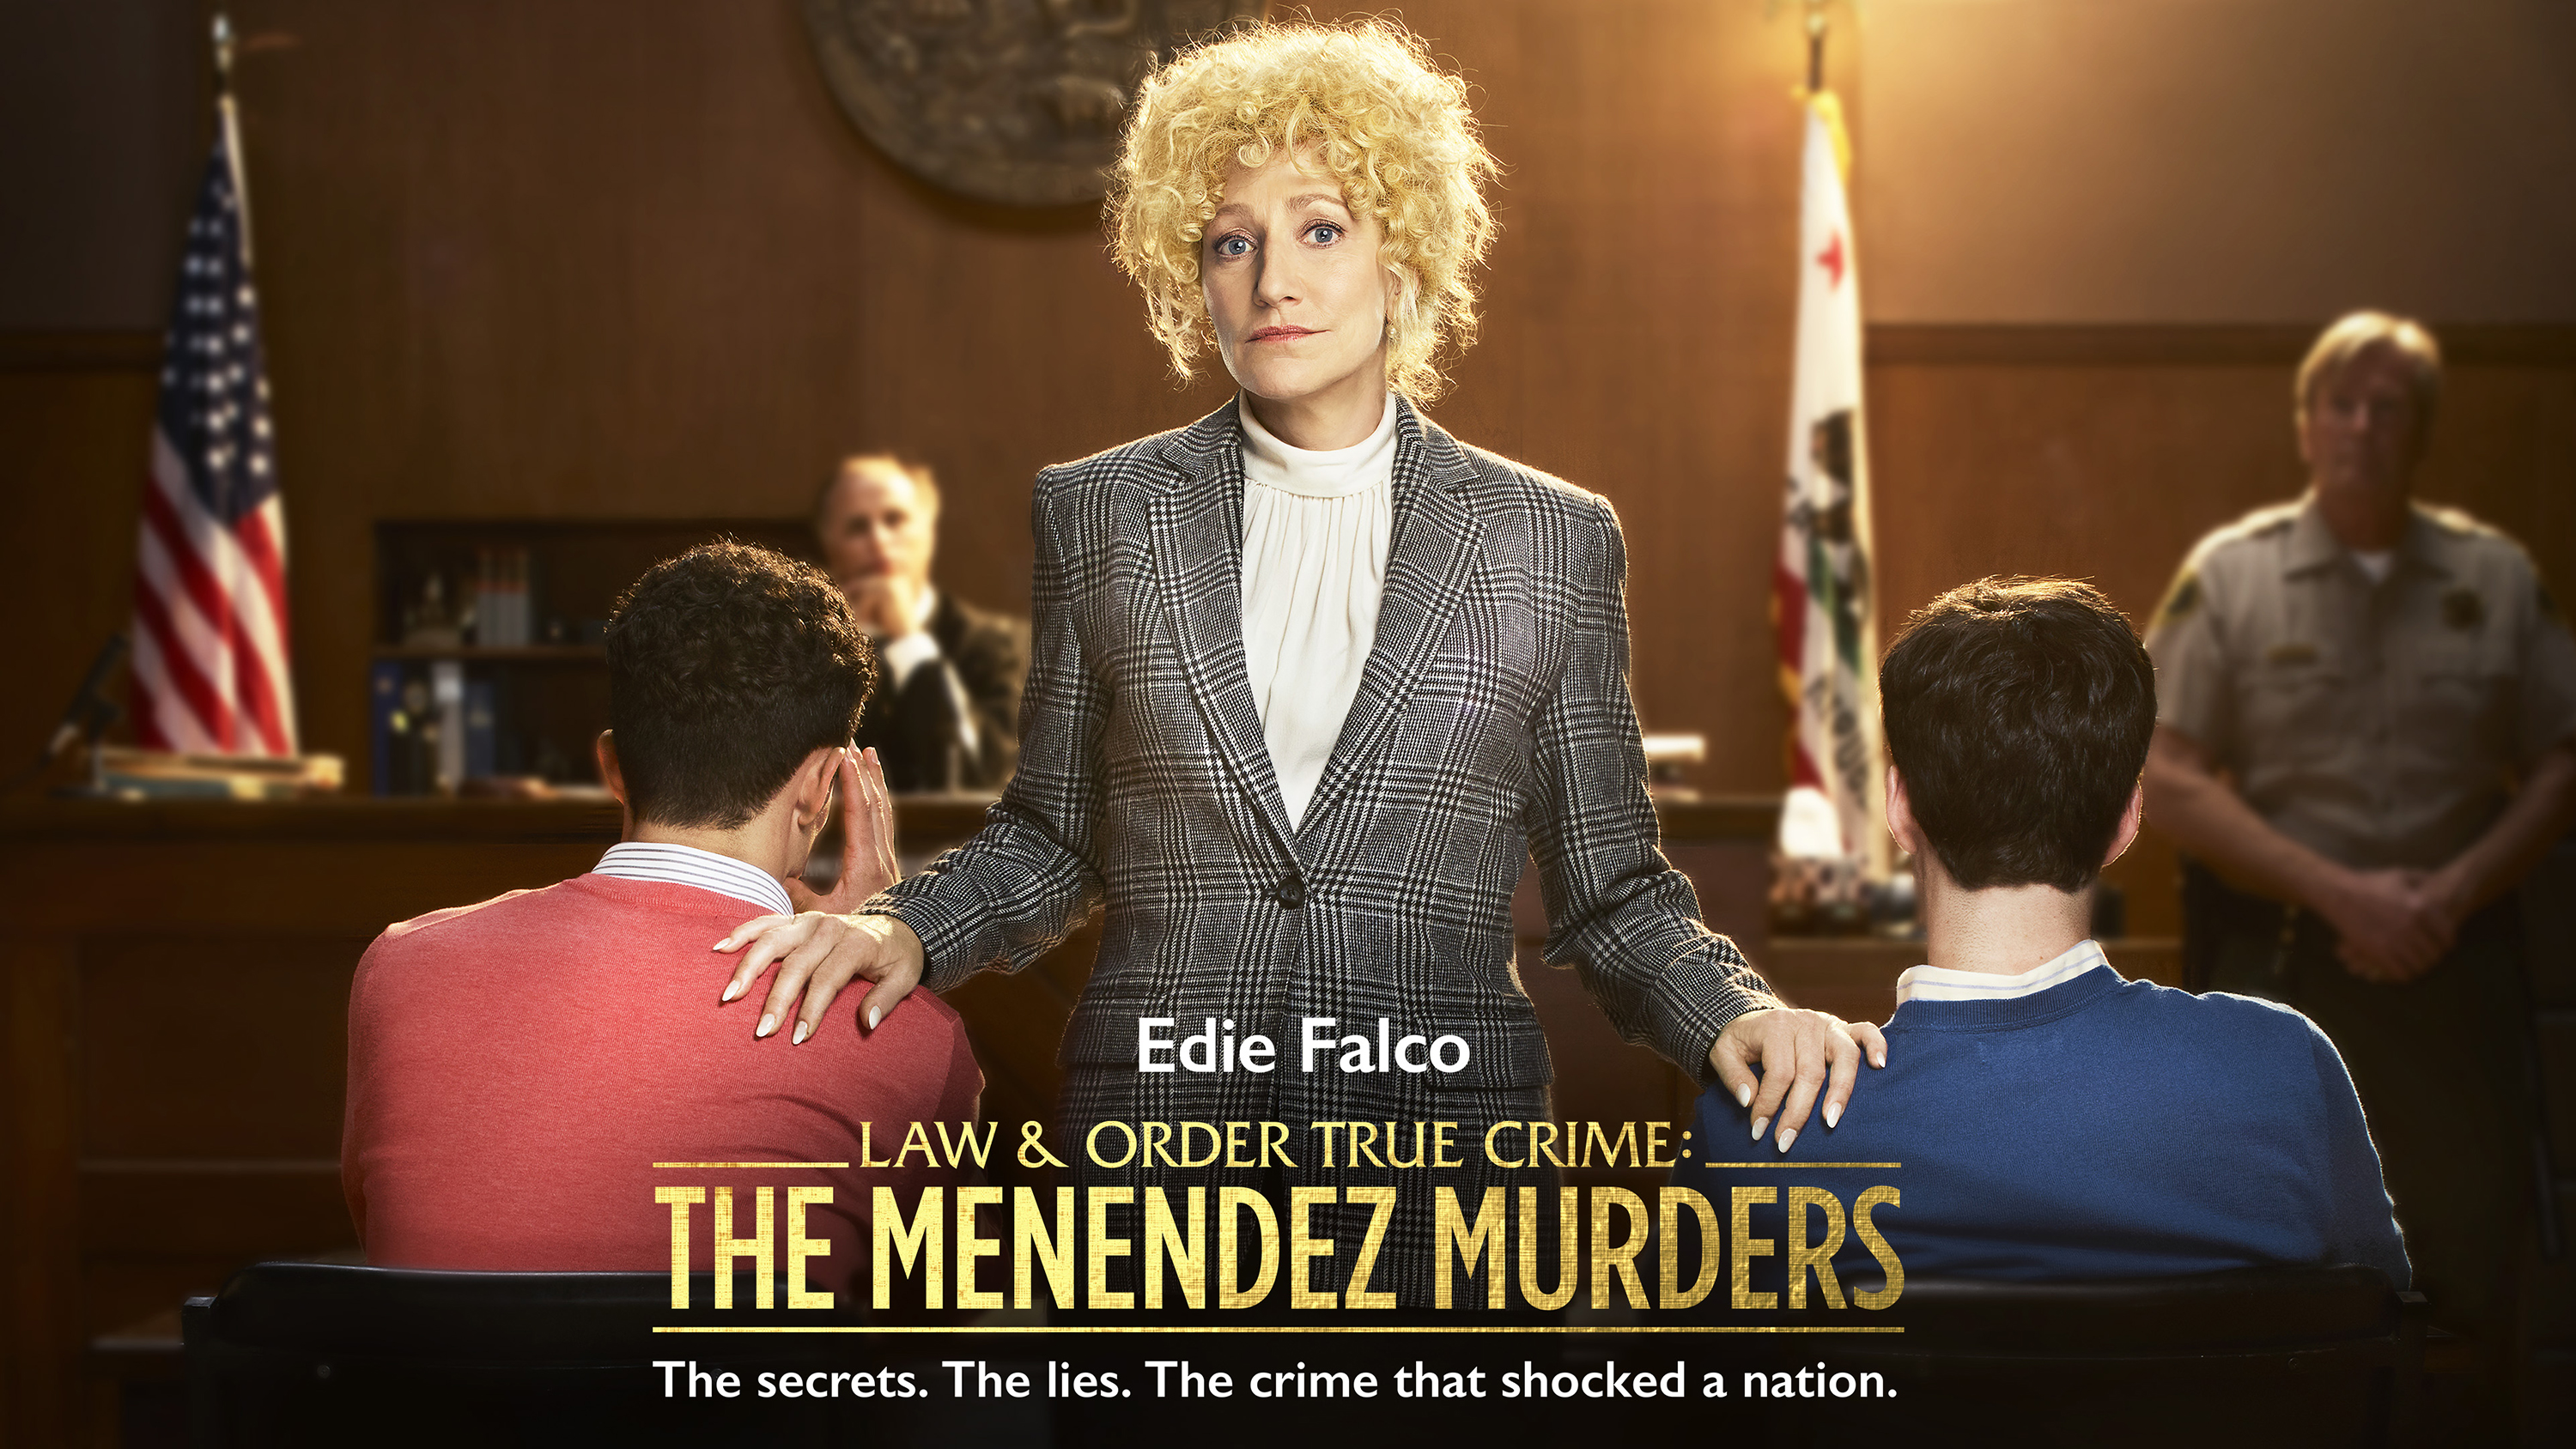 Dick Wolf Thinks the Menendez Brothers Should Have Received a Lighter Sentence